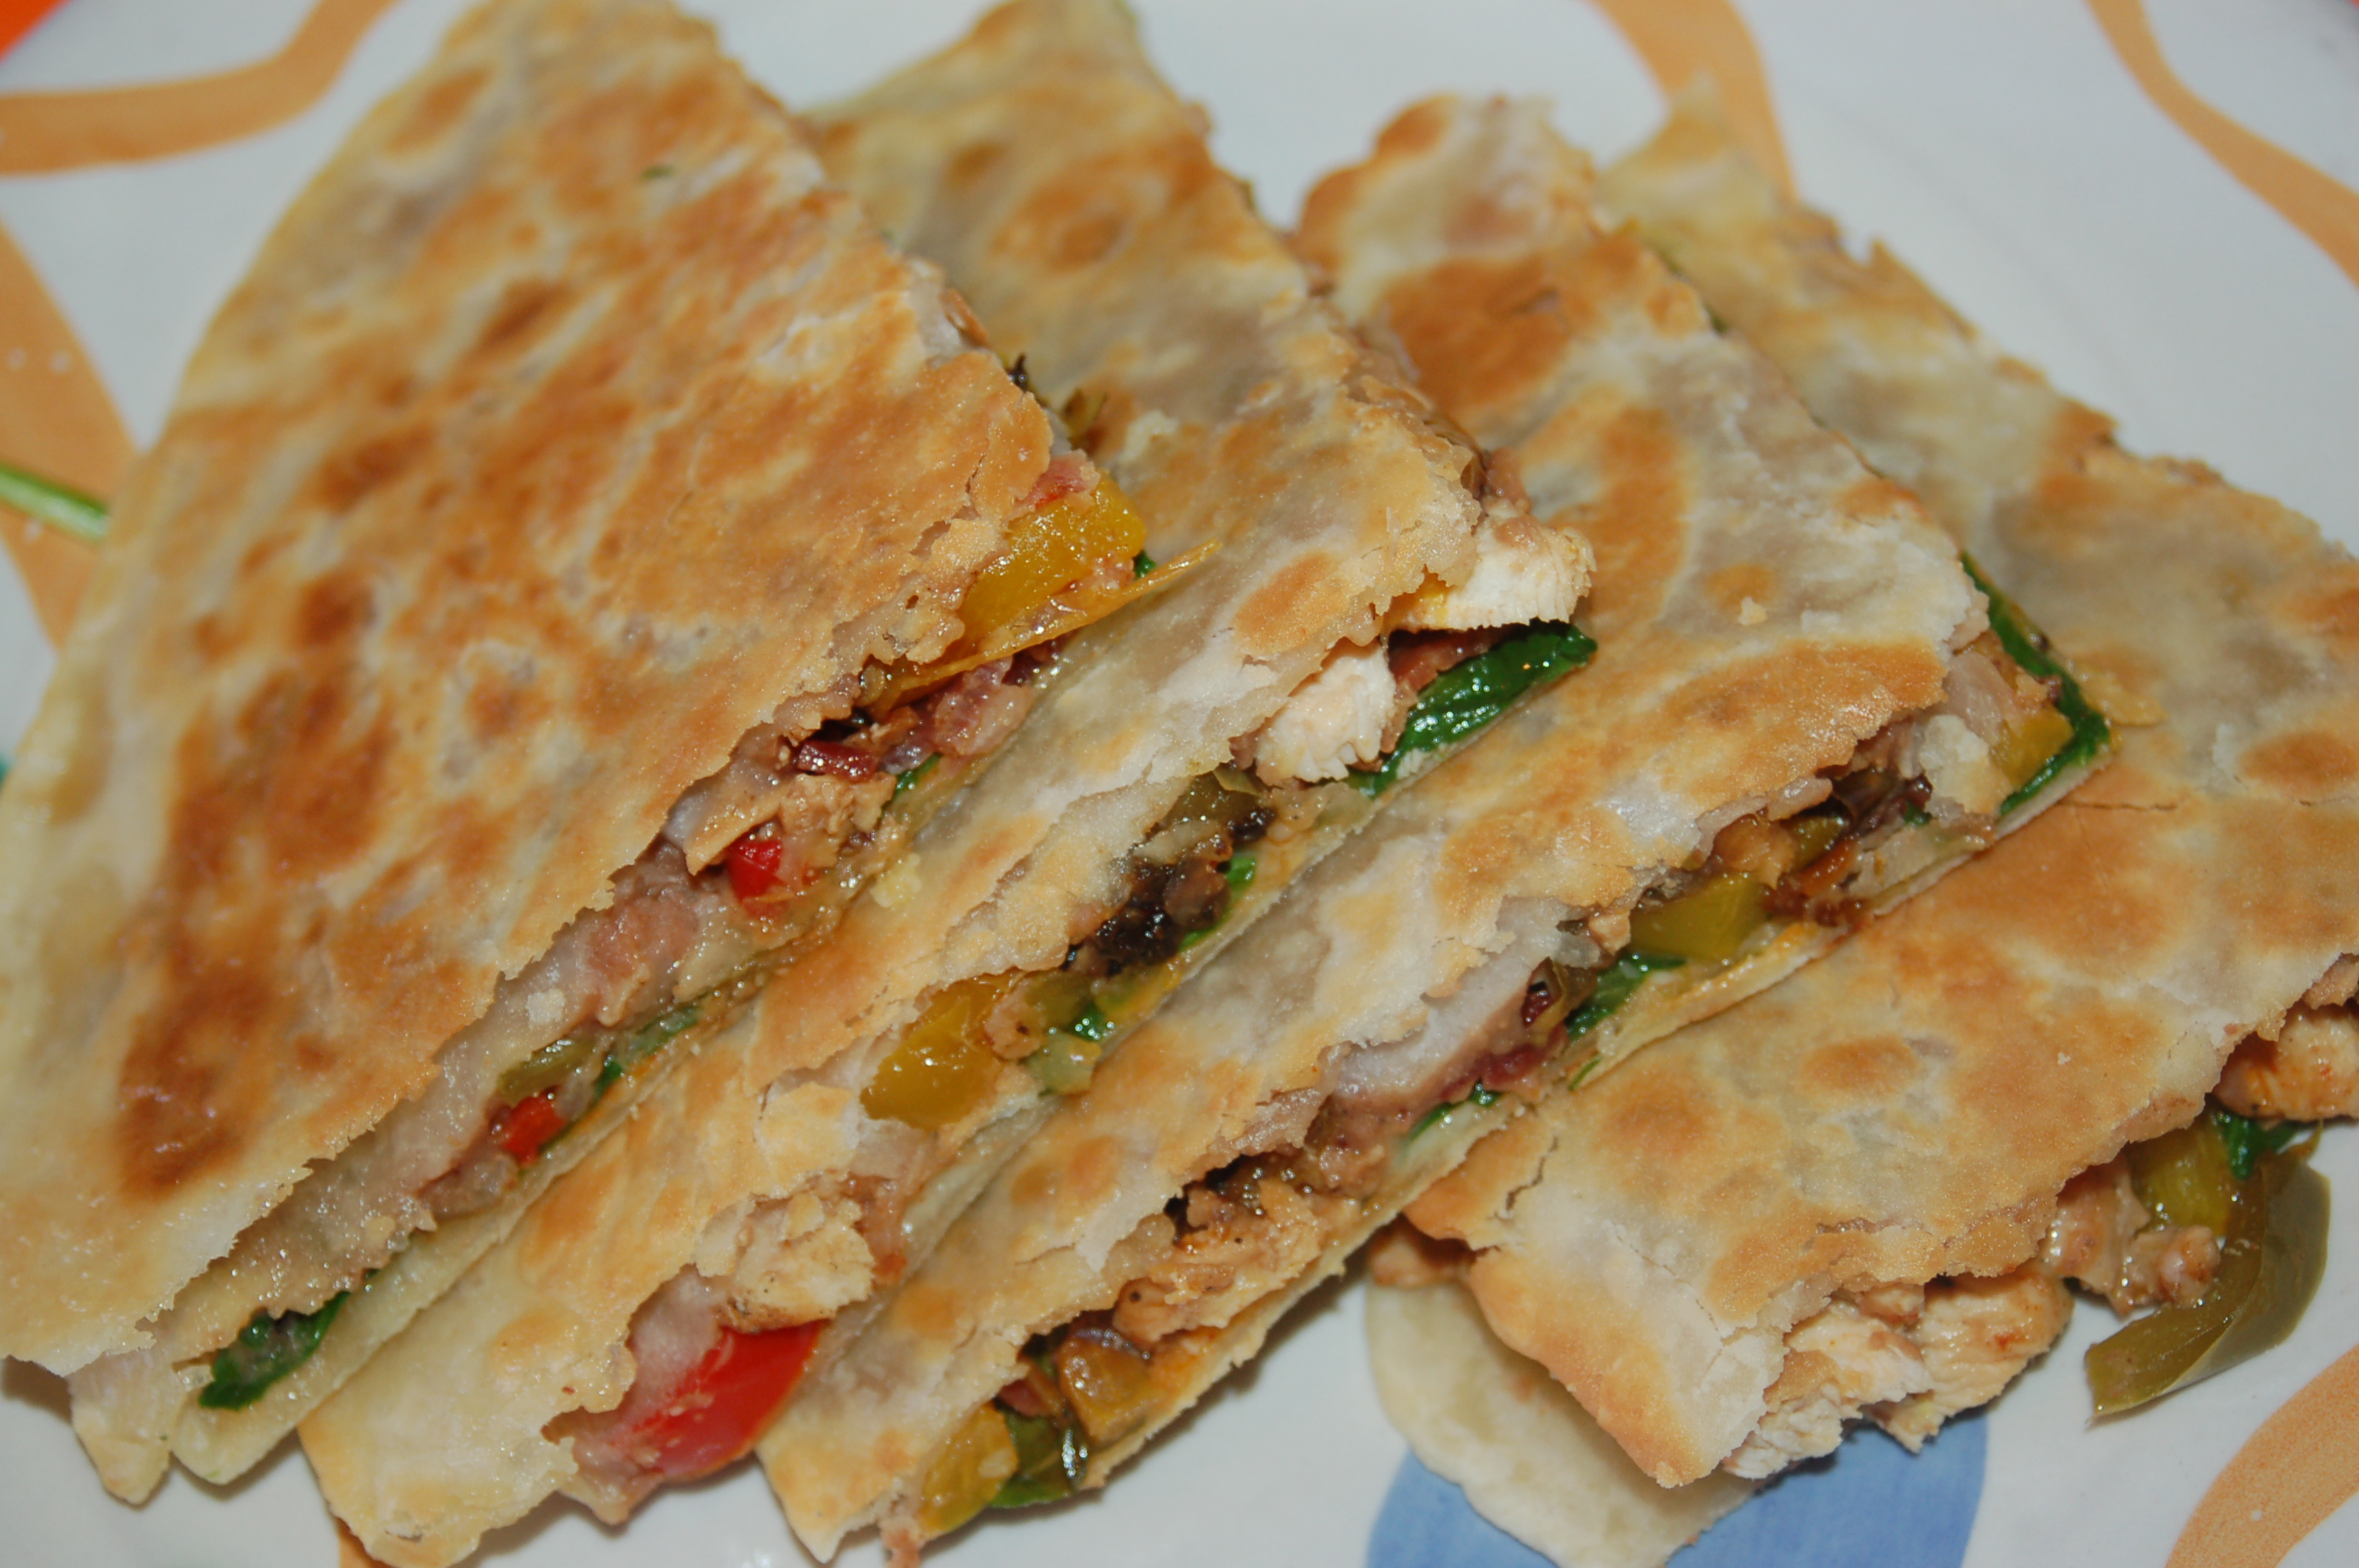 Chicken Quesadillas (serves 4) | Crappy Kitchen - Good Dinners!